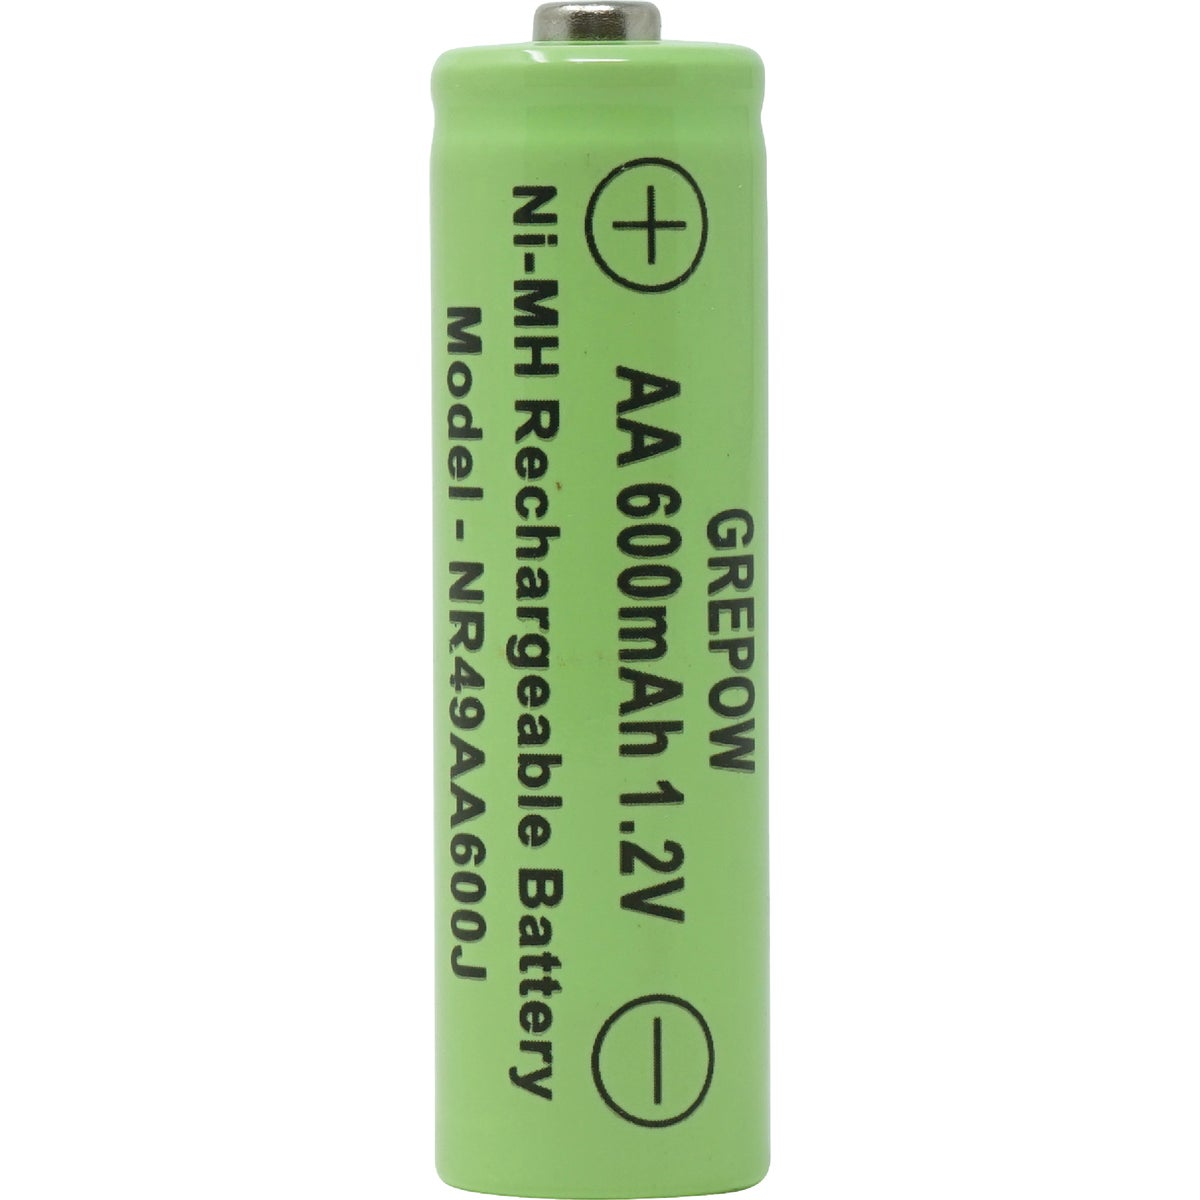 4PK AA NICAD BATTERY